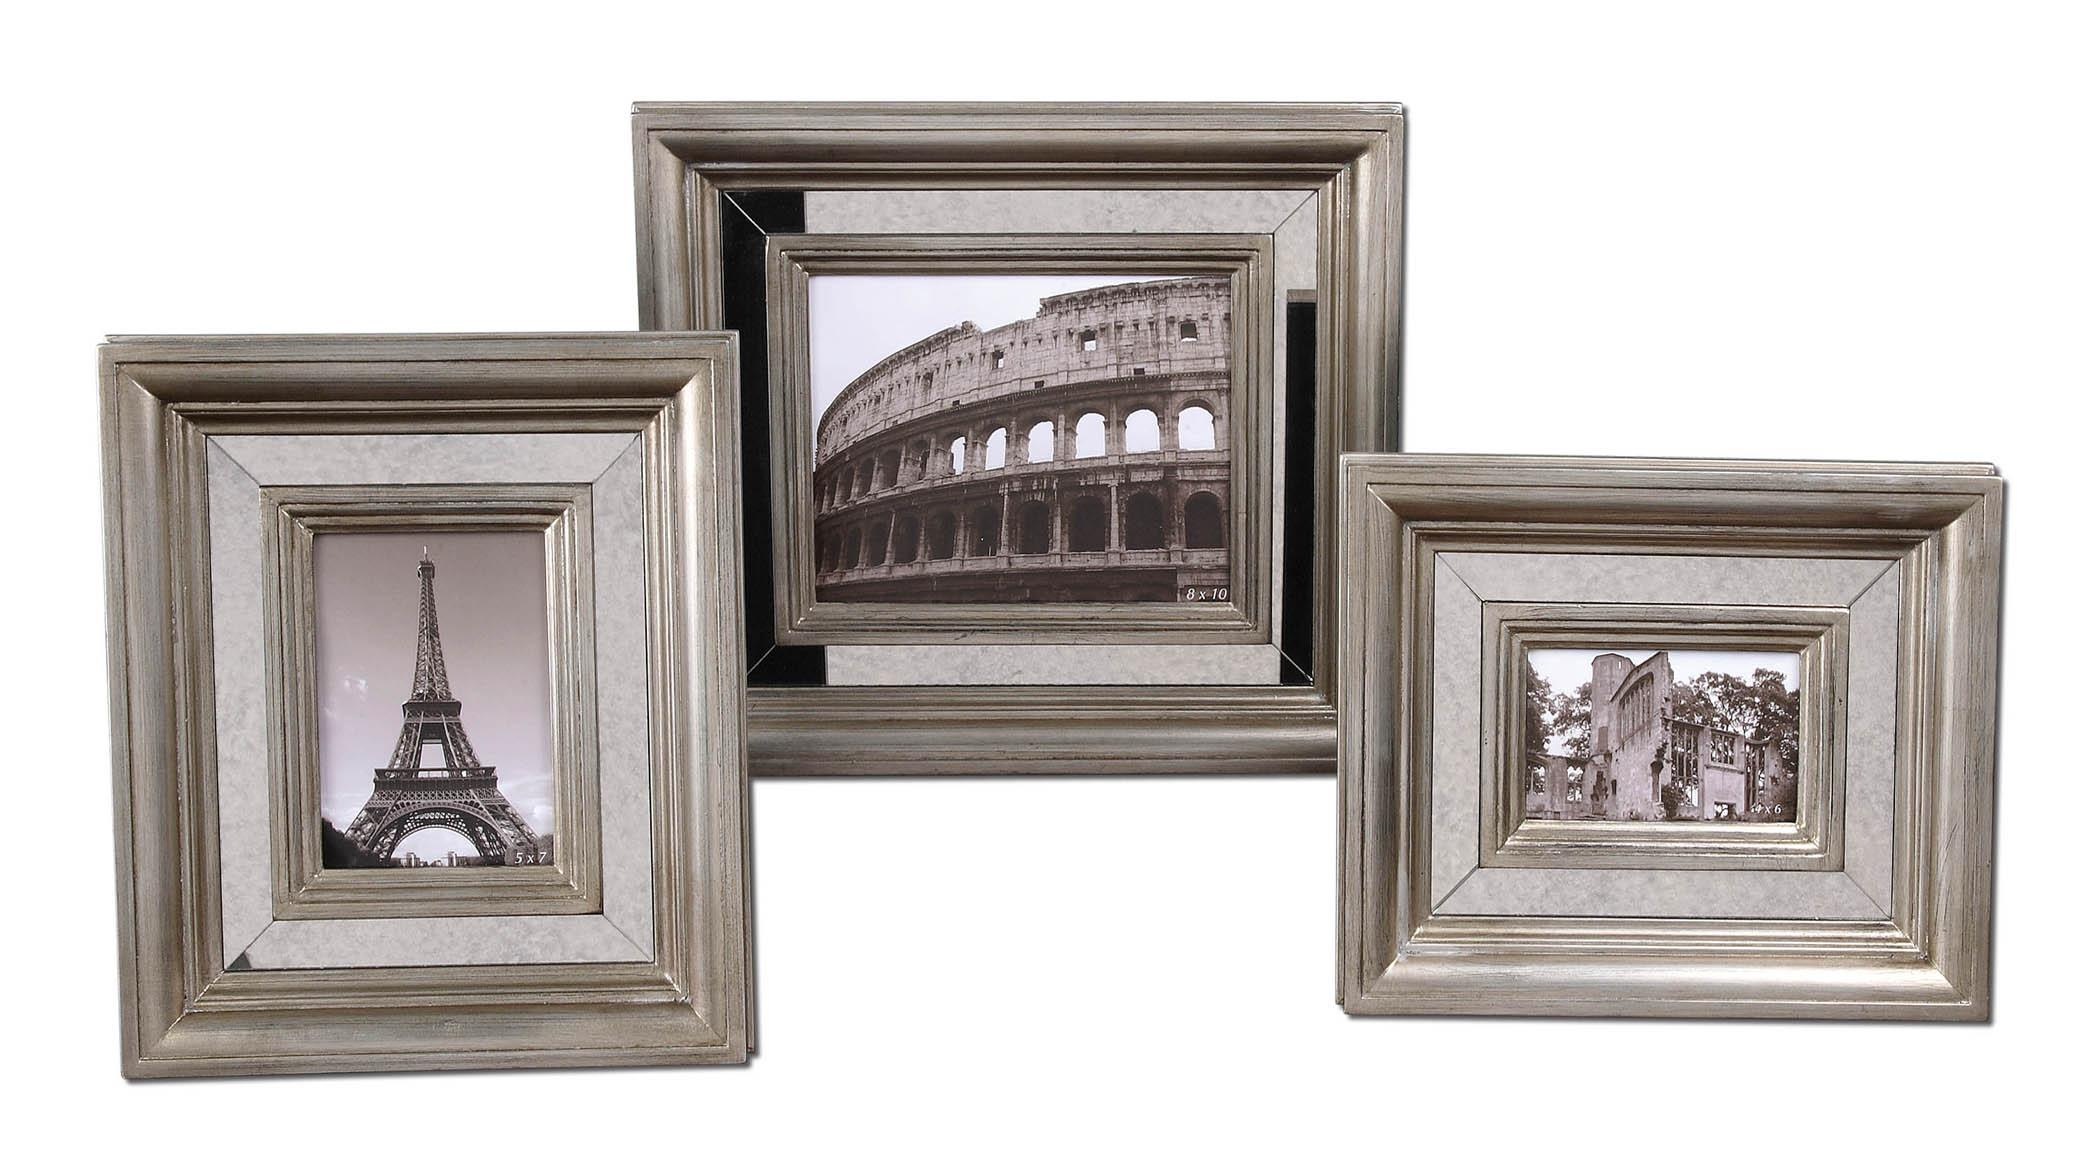 Uttermost Accessories Hasana Photo Frames Set of 3 - Item Number: 18519